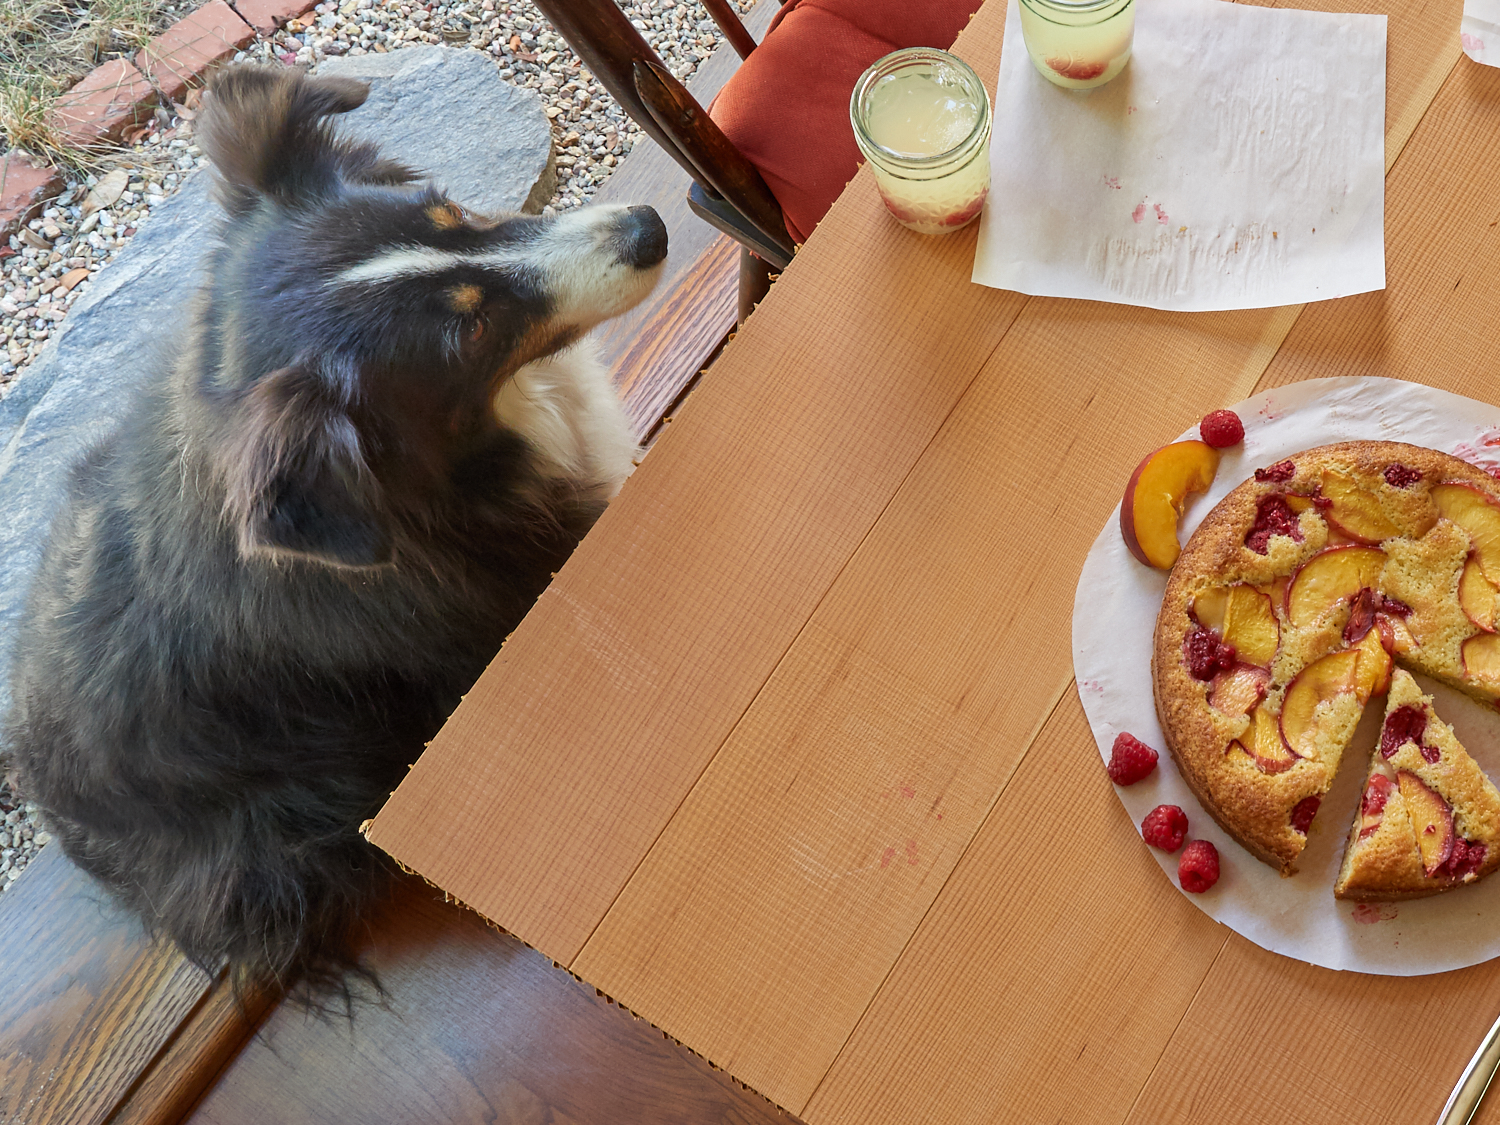 Riley is pretty sure he likes raspberry peach cake... but if we give him some, he could be certain.